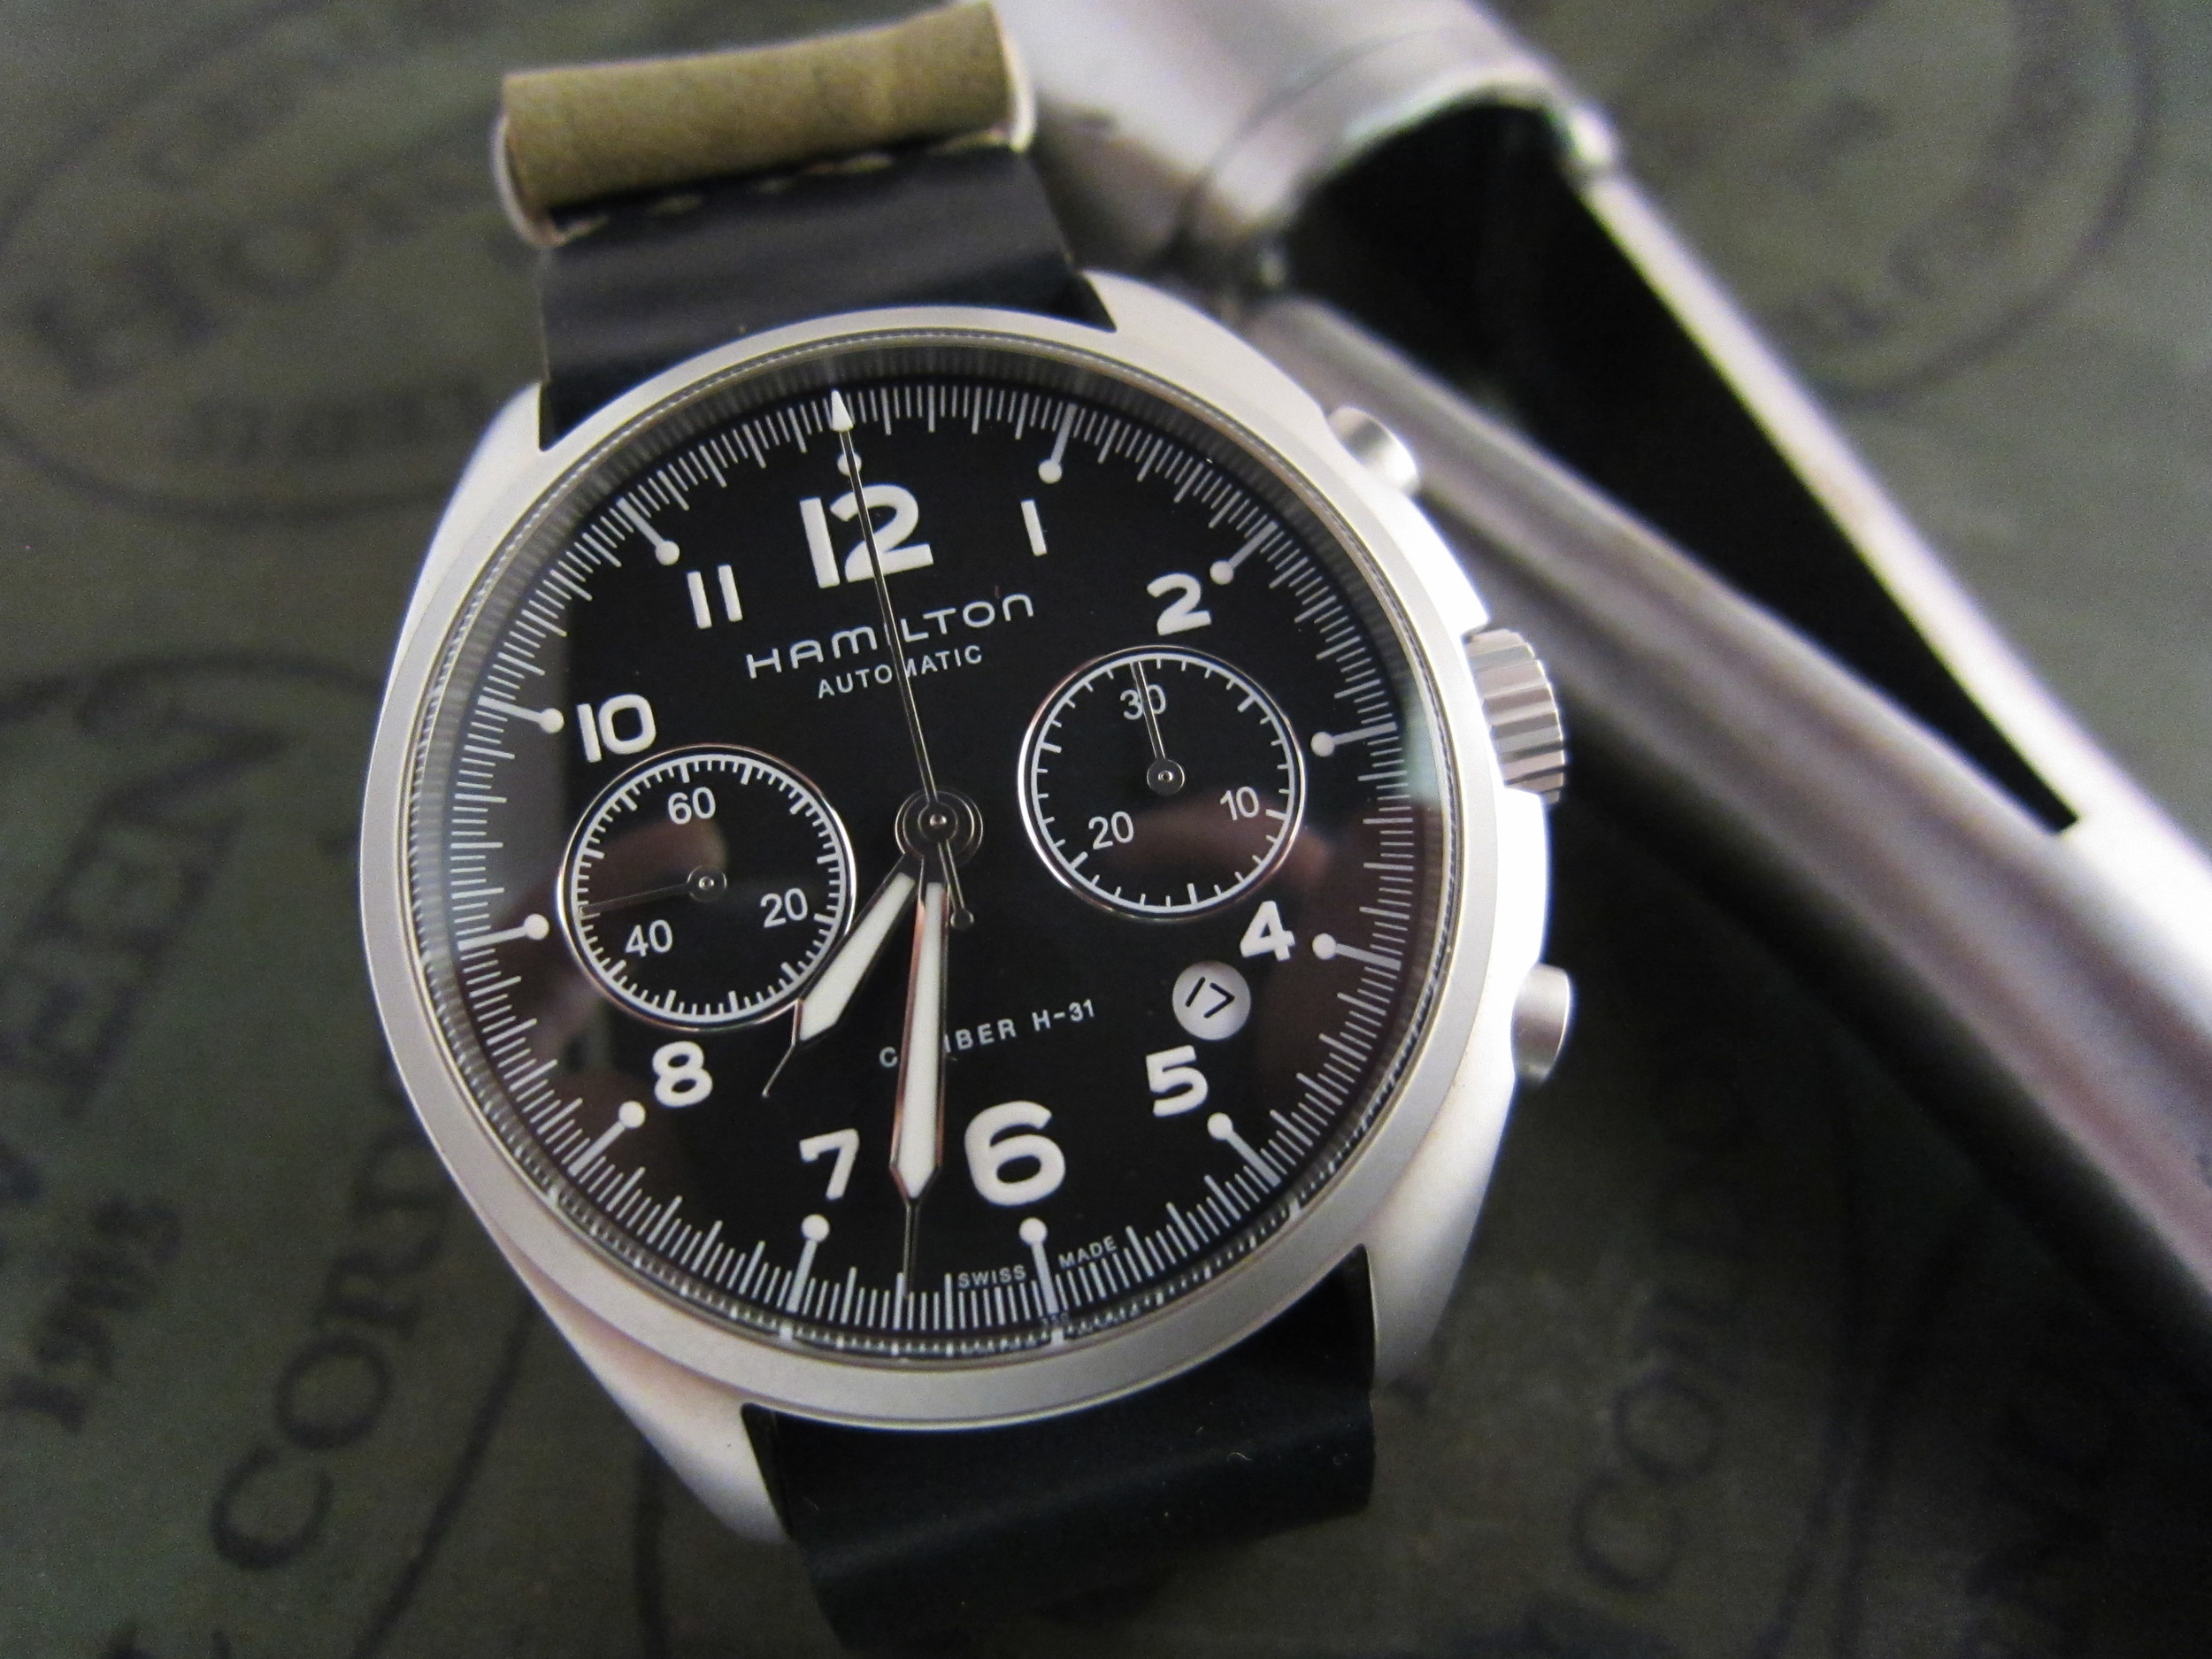 The black-dialed Hamilton chronograph, which did not find a permanent home at Rover Haven.